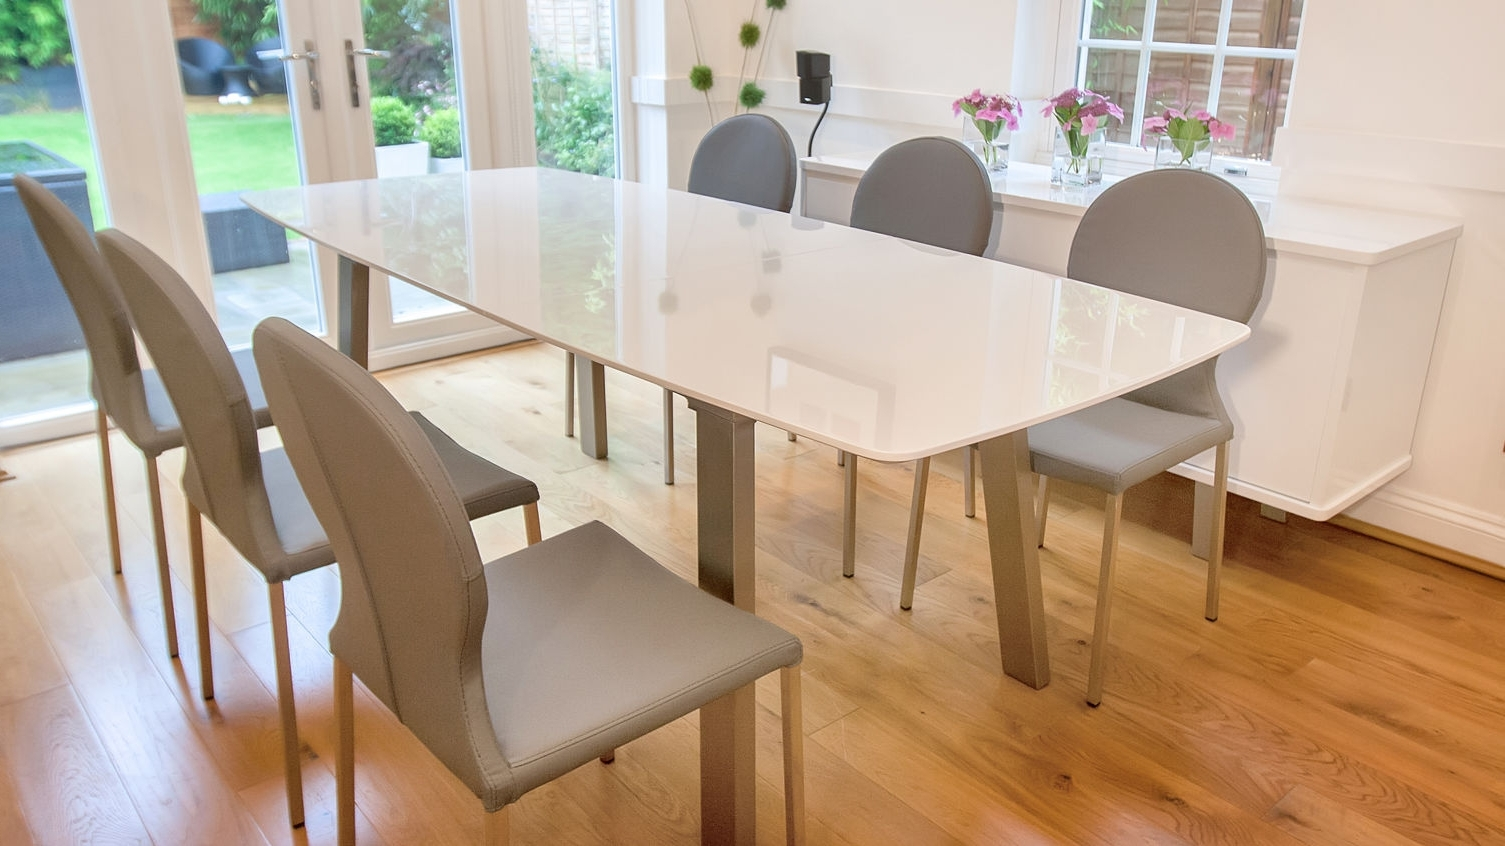 Extendable Dining Tables With 8 Seats Intended For Fashionable Extending Dining Room Tables And Chairs Dining Room Chair Slipcovers (Gallery 14 of 25)